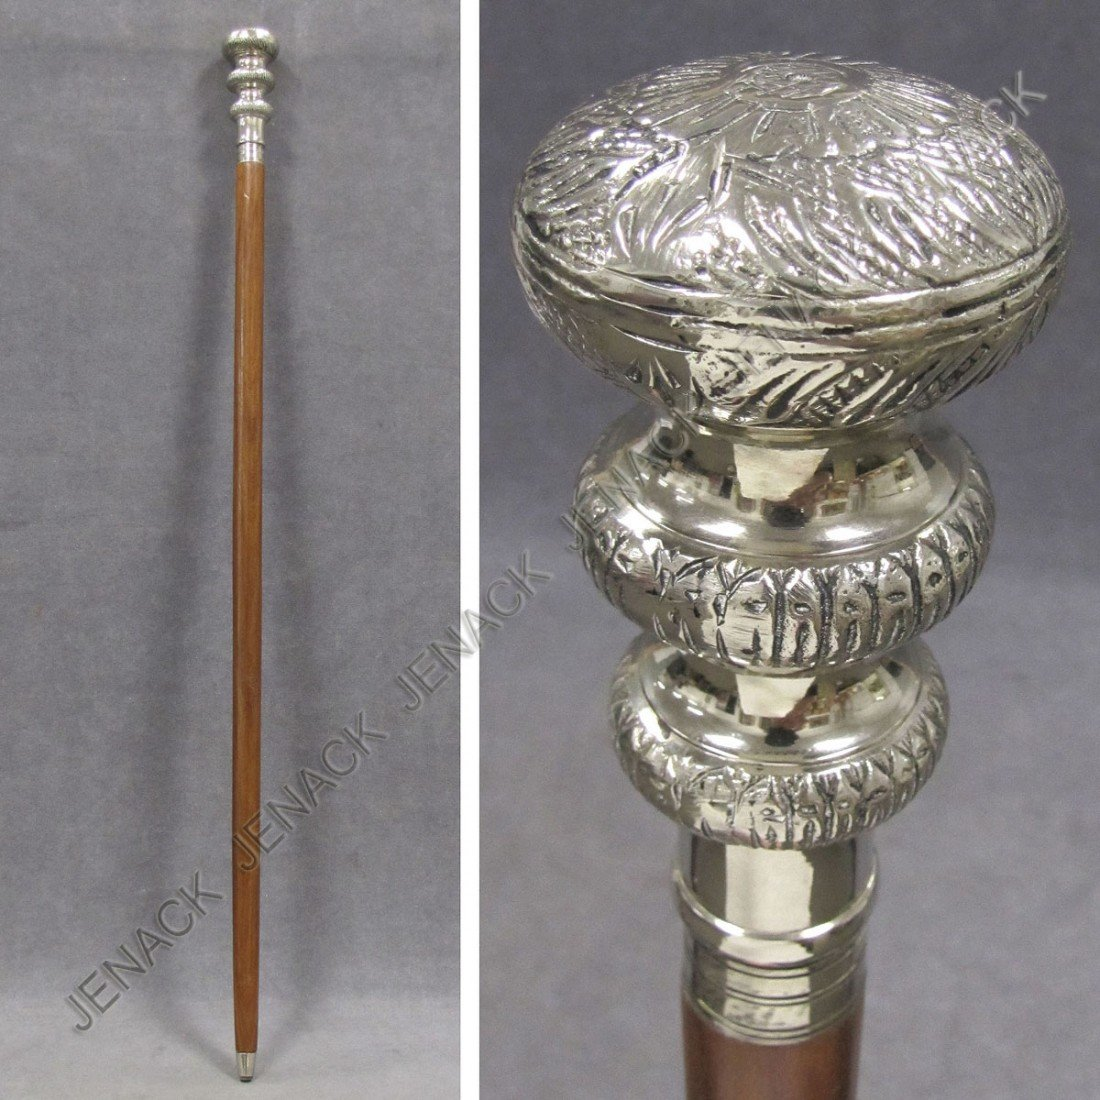 6: MAHOGANY WALKING STICK WITH SILVER PLATE CAP